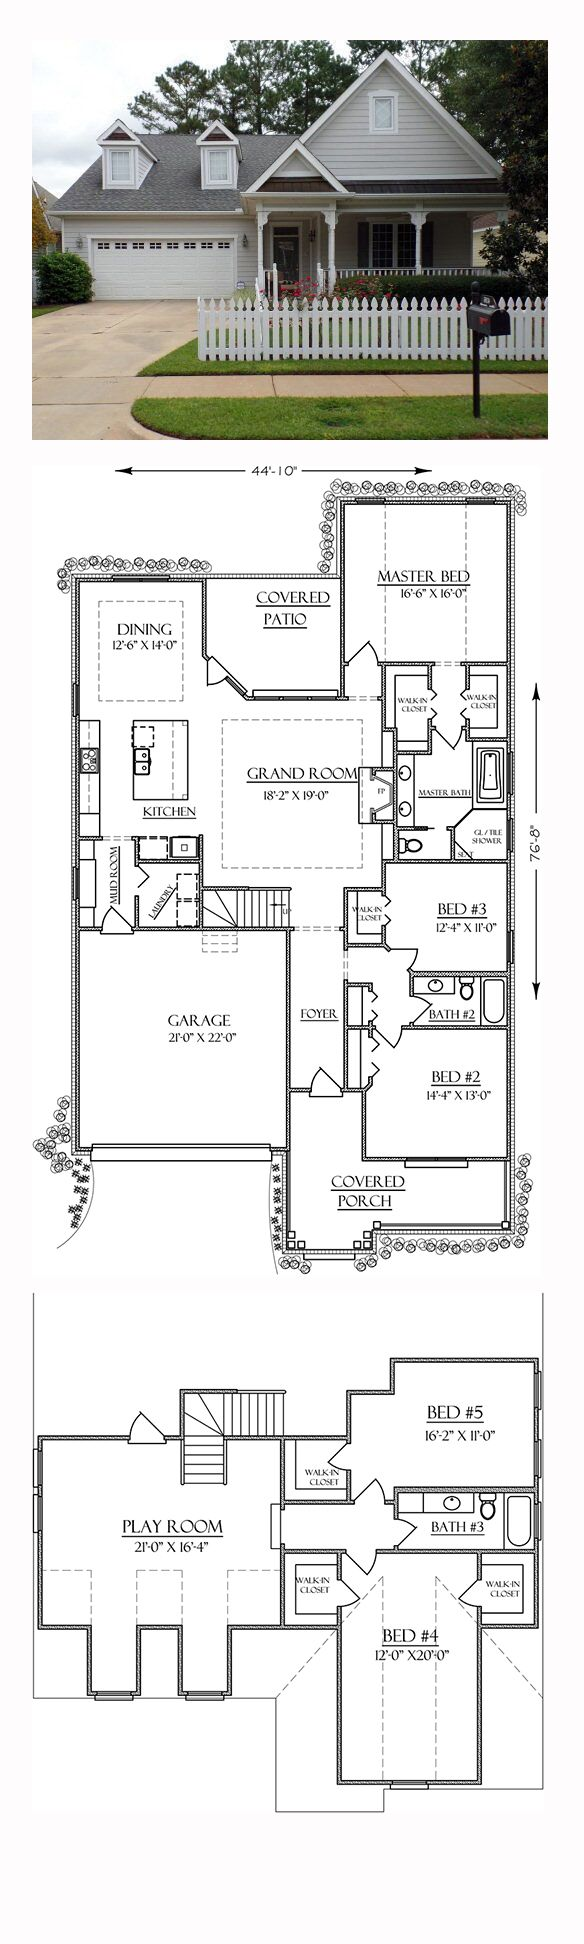 best 25 5 bedroom house plans ideas only on pinterest 4 bedroom